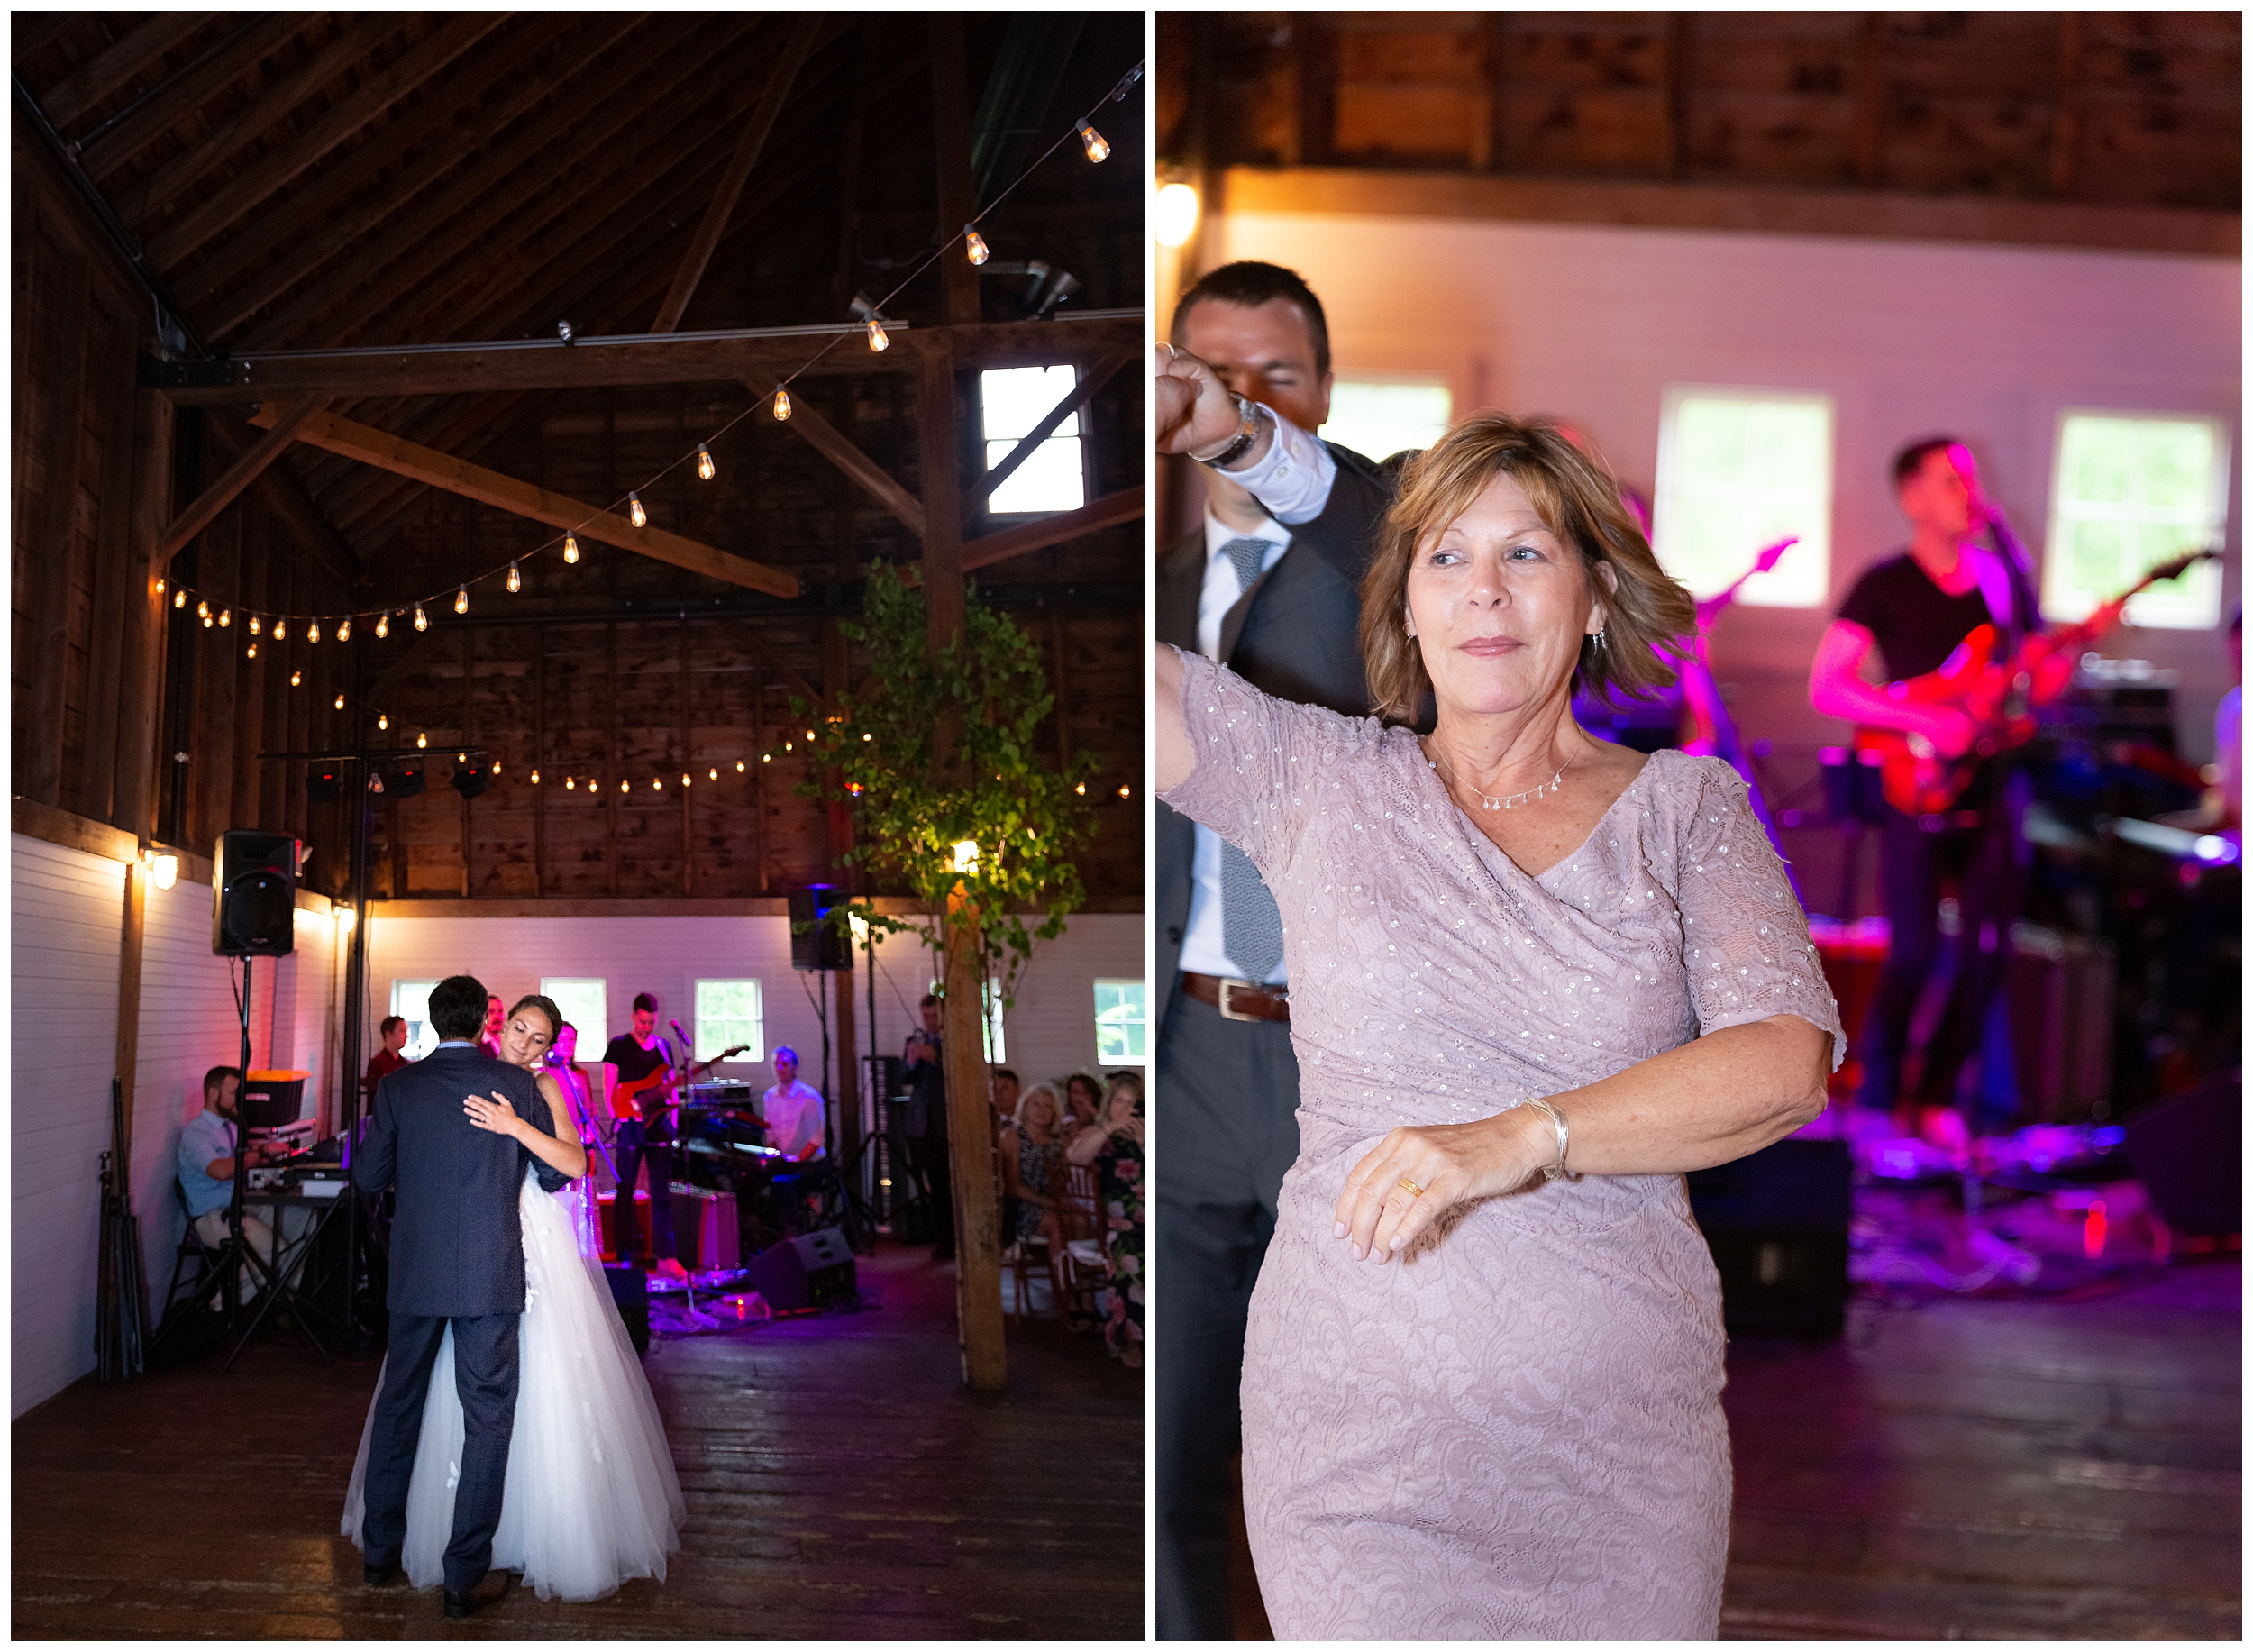 Father-Daughter dance is sweet and slow while Mother and Son twirl about.